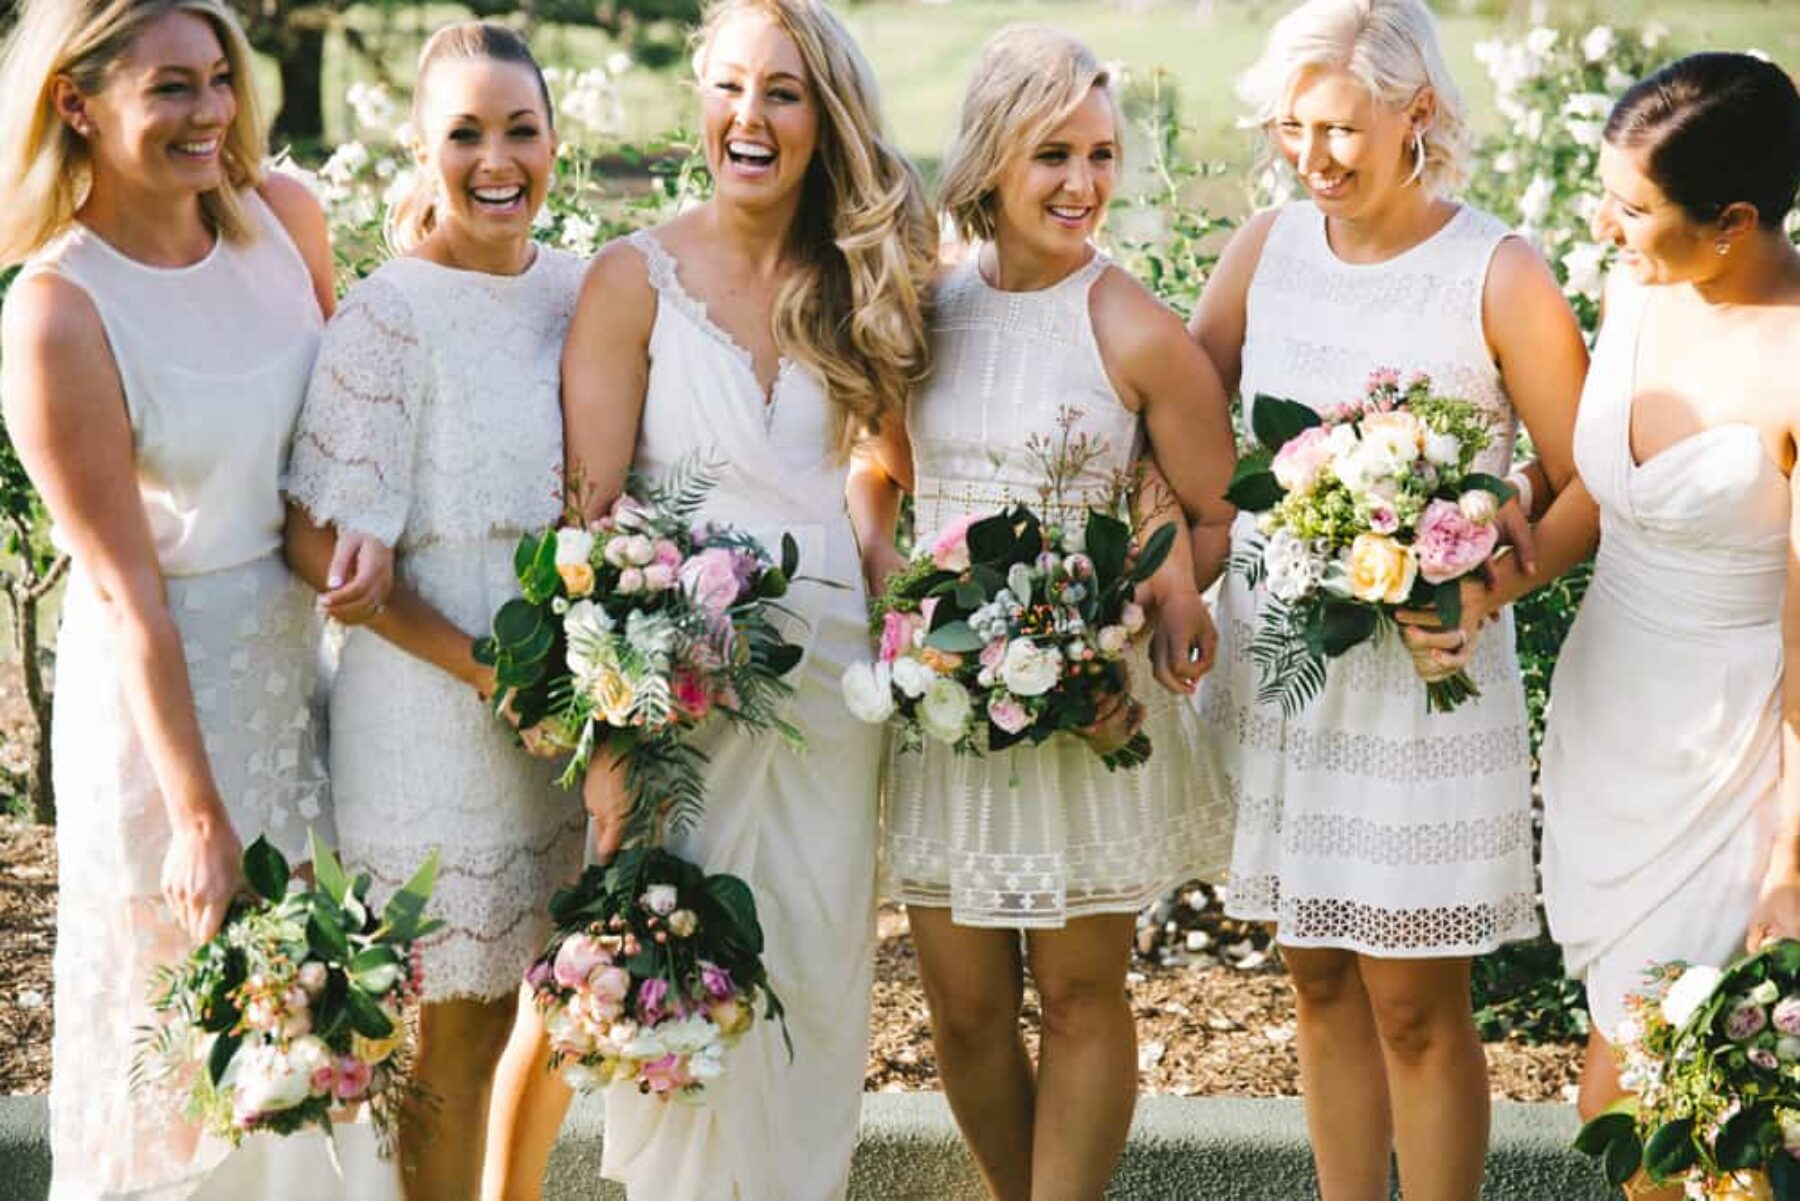 Bridesmaids in different white dresses / Kait Photography